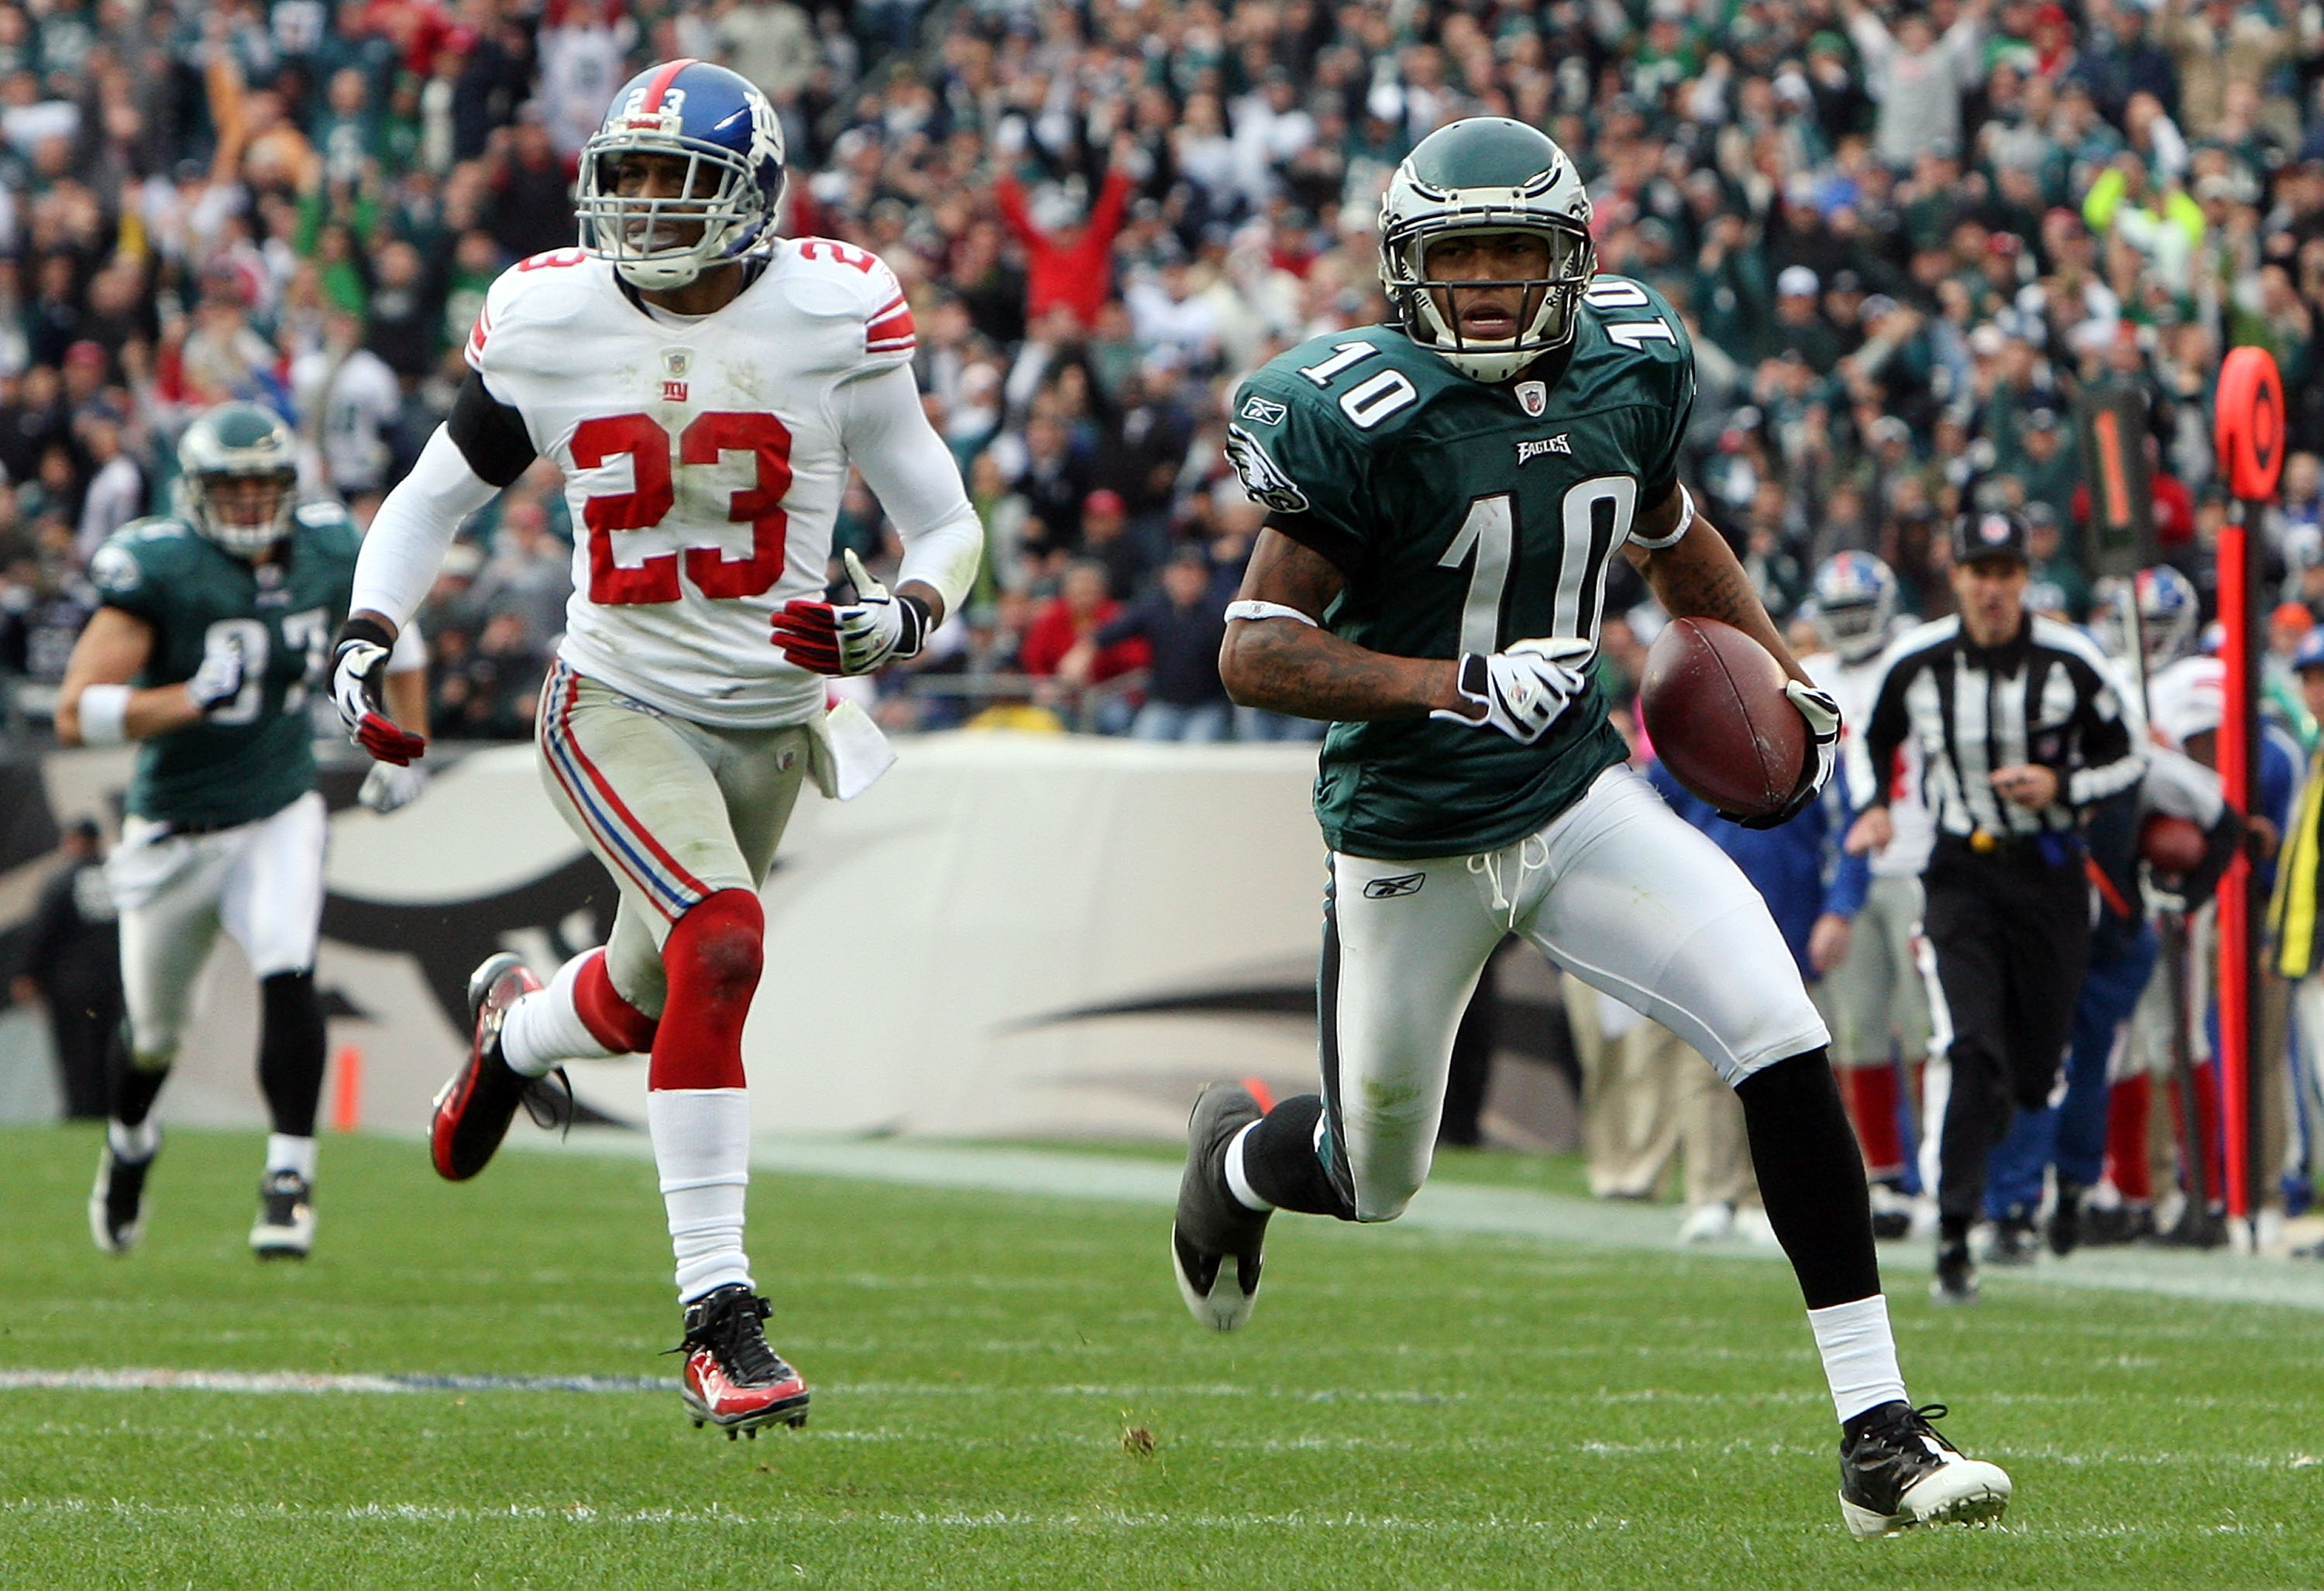 PHILADELPHIA - NOVEMBER 01:  DeSean Jackson #10 of the Philadelphia Eagles carries a reception for a second quarter touchdown past Corey Webster #23 of the New York Giants on November 1, 2009 at Lincoln Financial Field in Philadelphia, Pennsylvania.  (Pho